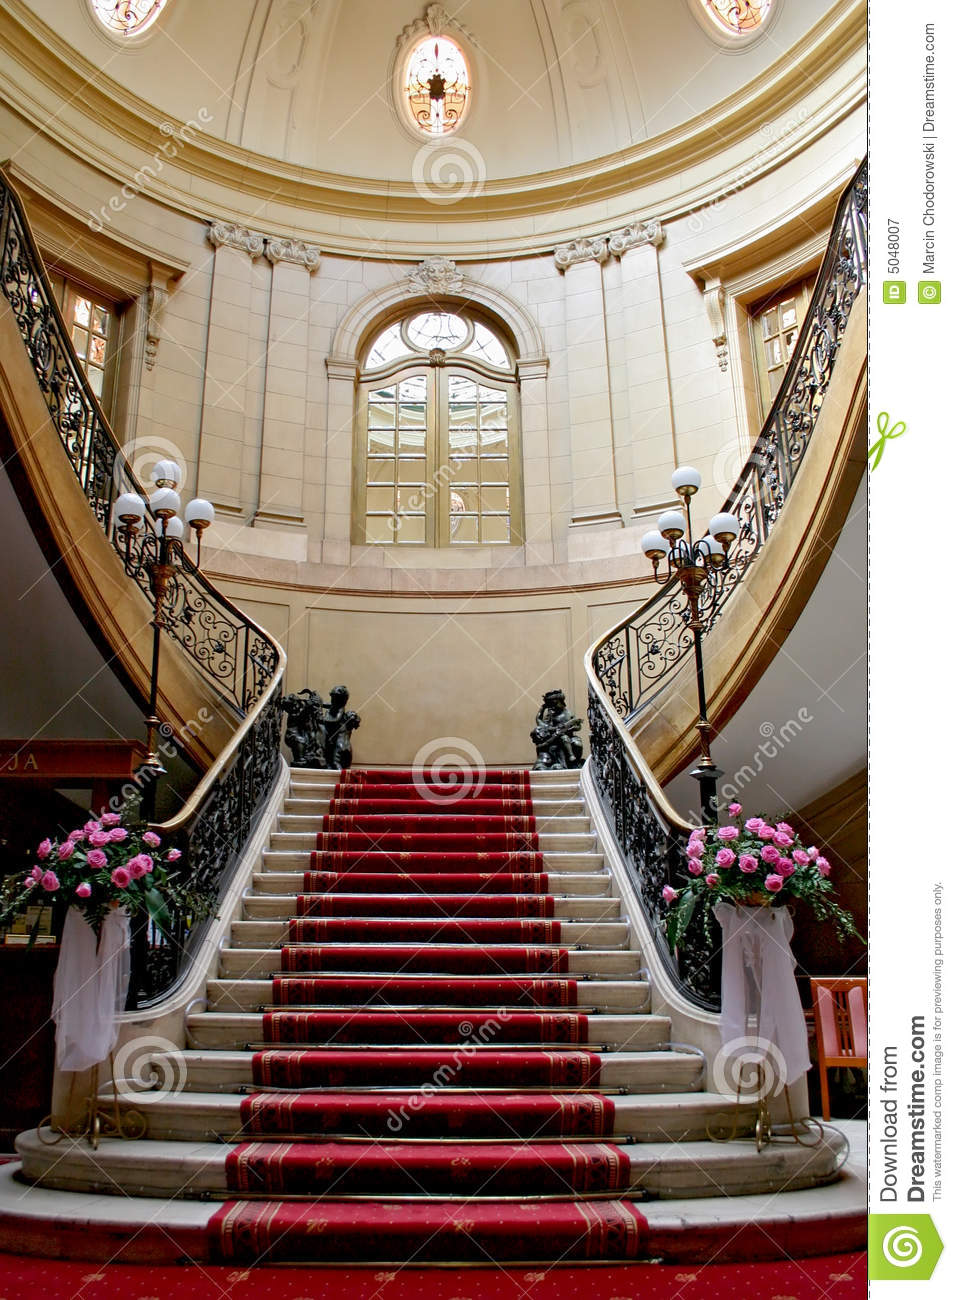 Stairwell in palace.